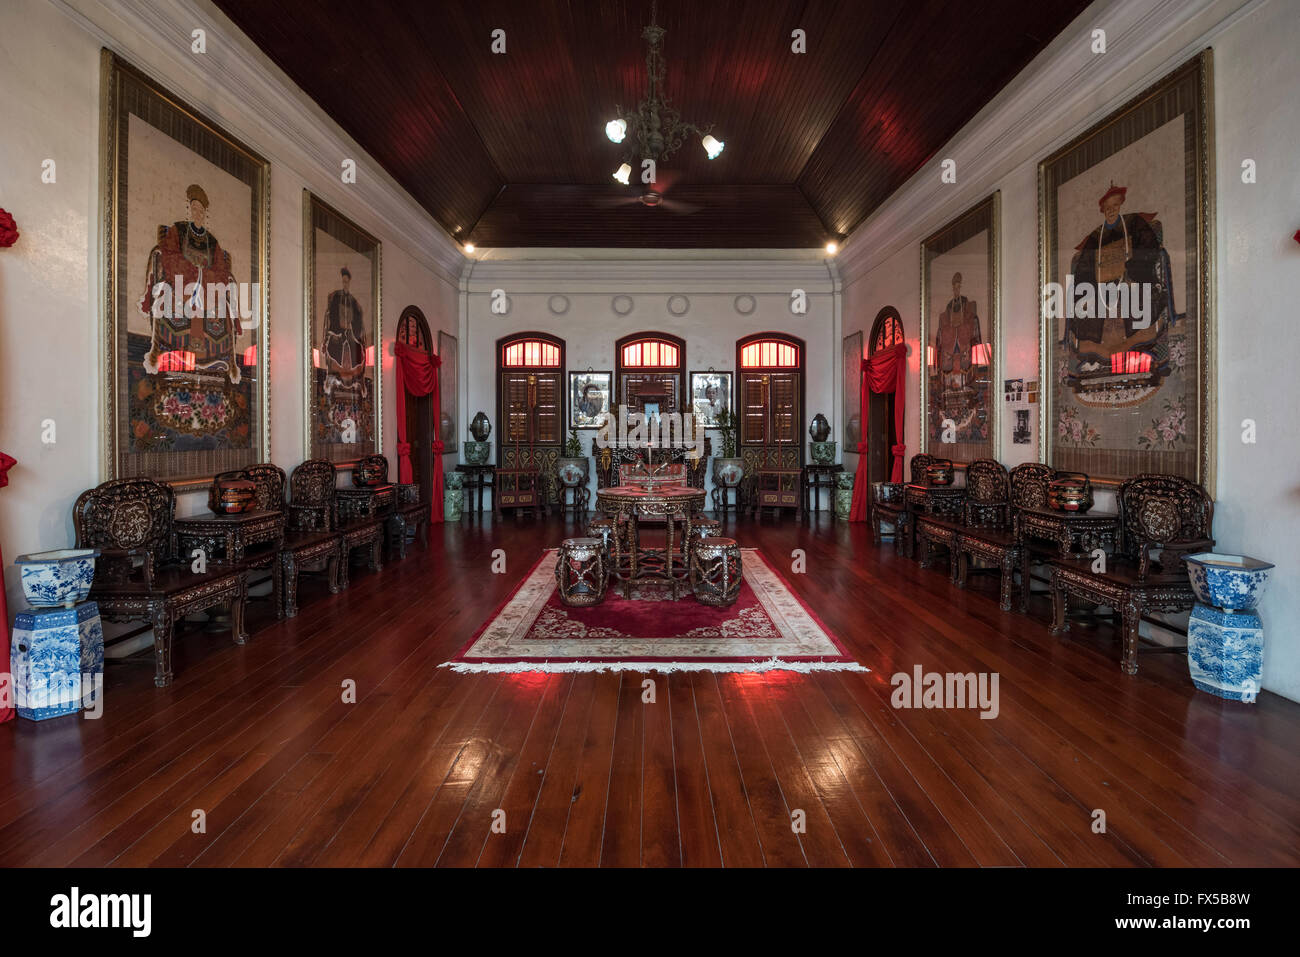 2nd Floor Lobby in the Peranakan Mansion, George Town, Penang - Stock Image